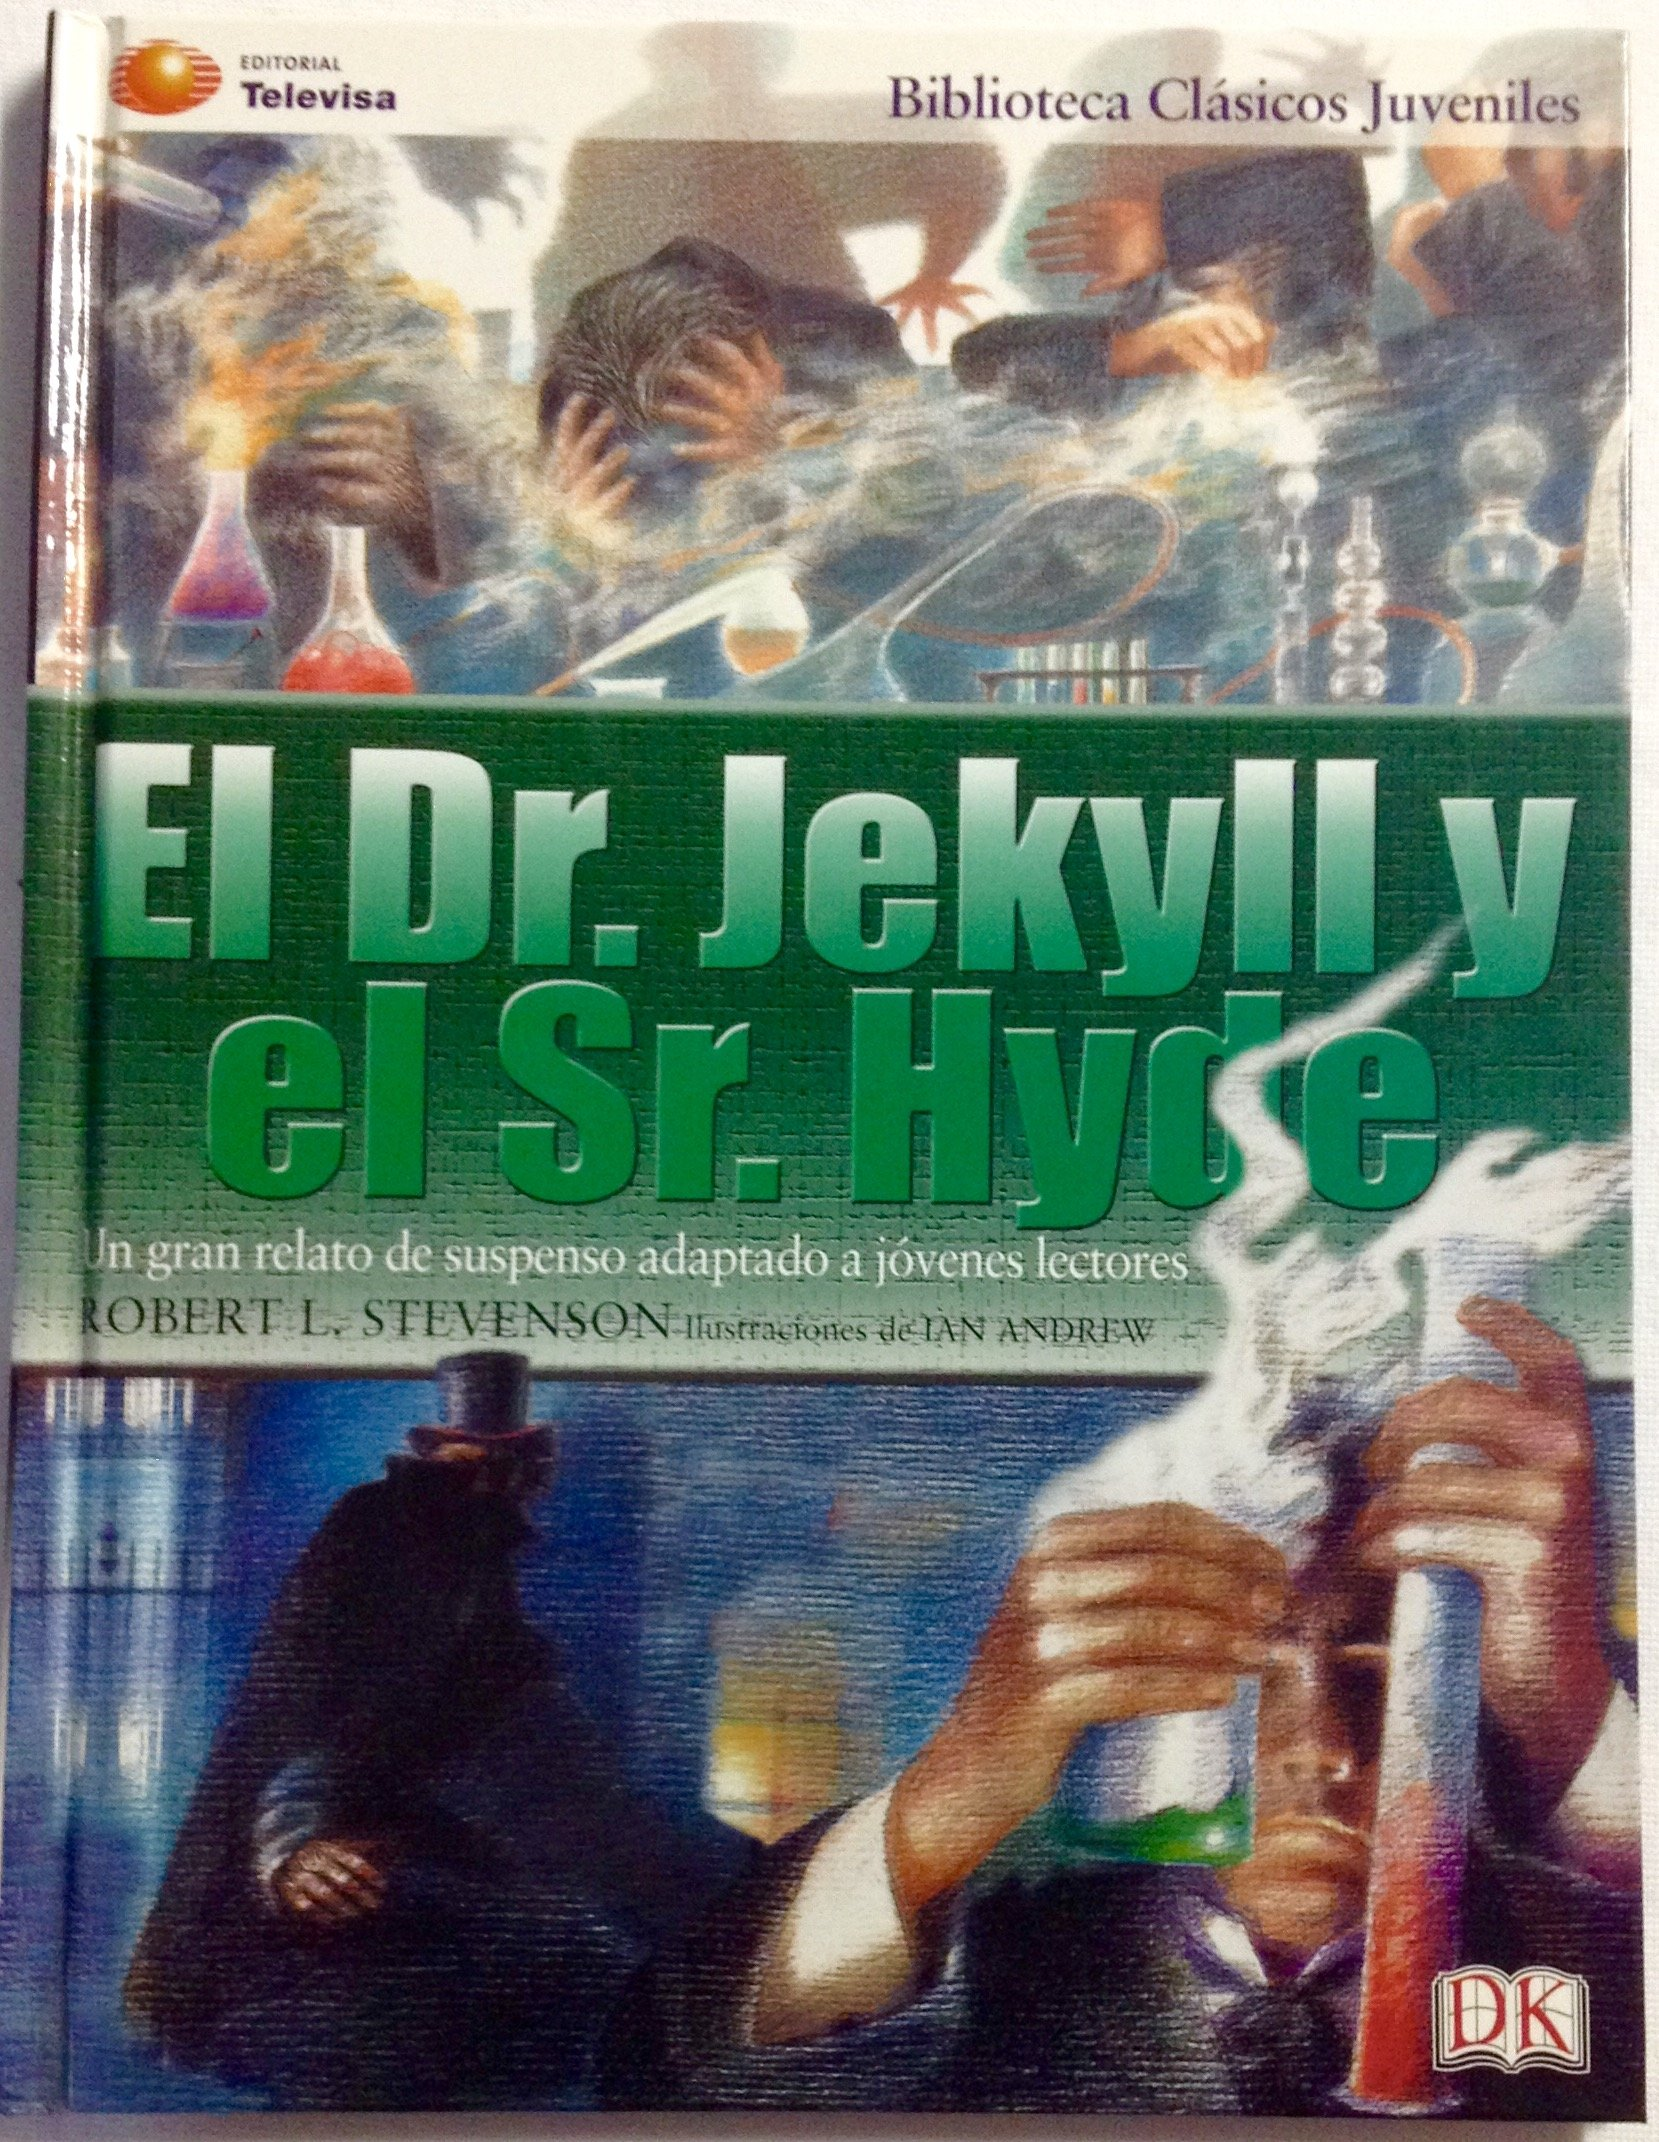 El extrano caso del Dr. Jekyll y el Sr. Hyde/ The Strange Case of Dr. Jekeyll and Mr. Hyde (Clasicos Juveniles/ Juvenile Classics) (Spanish Edition): ...